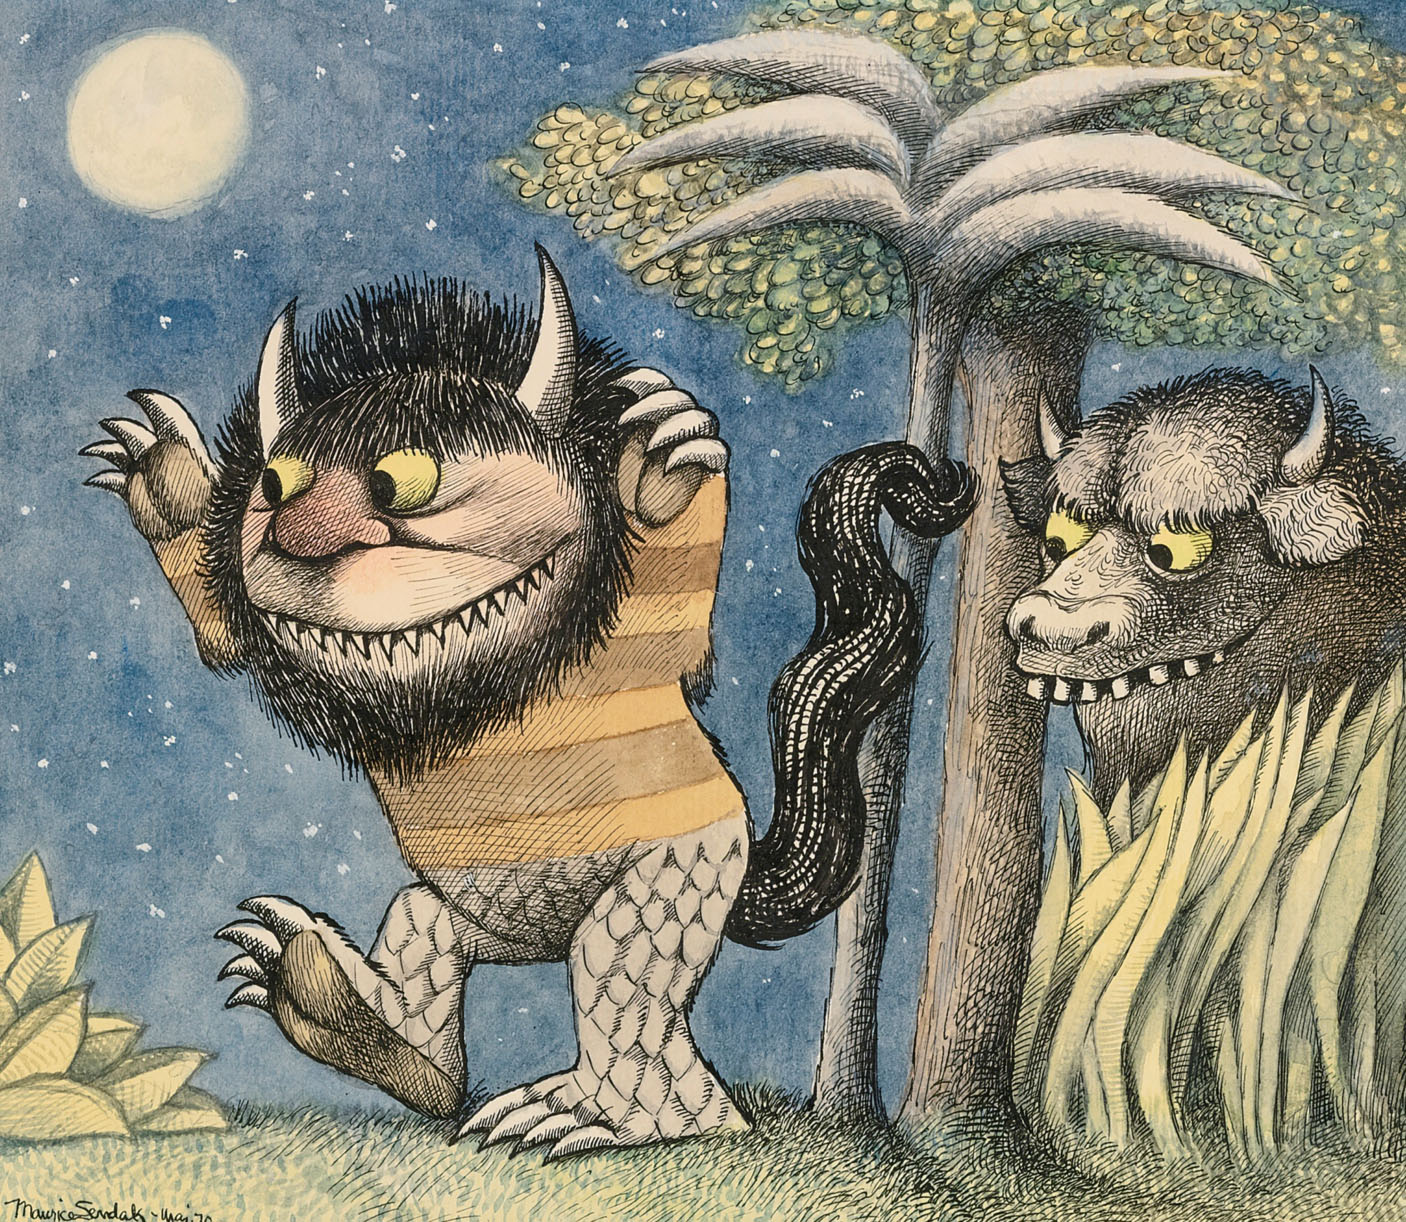 Original Art from 'Where the Wild Things Are'